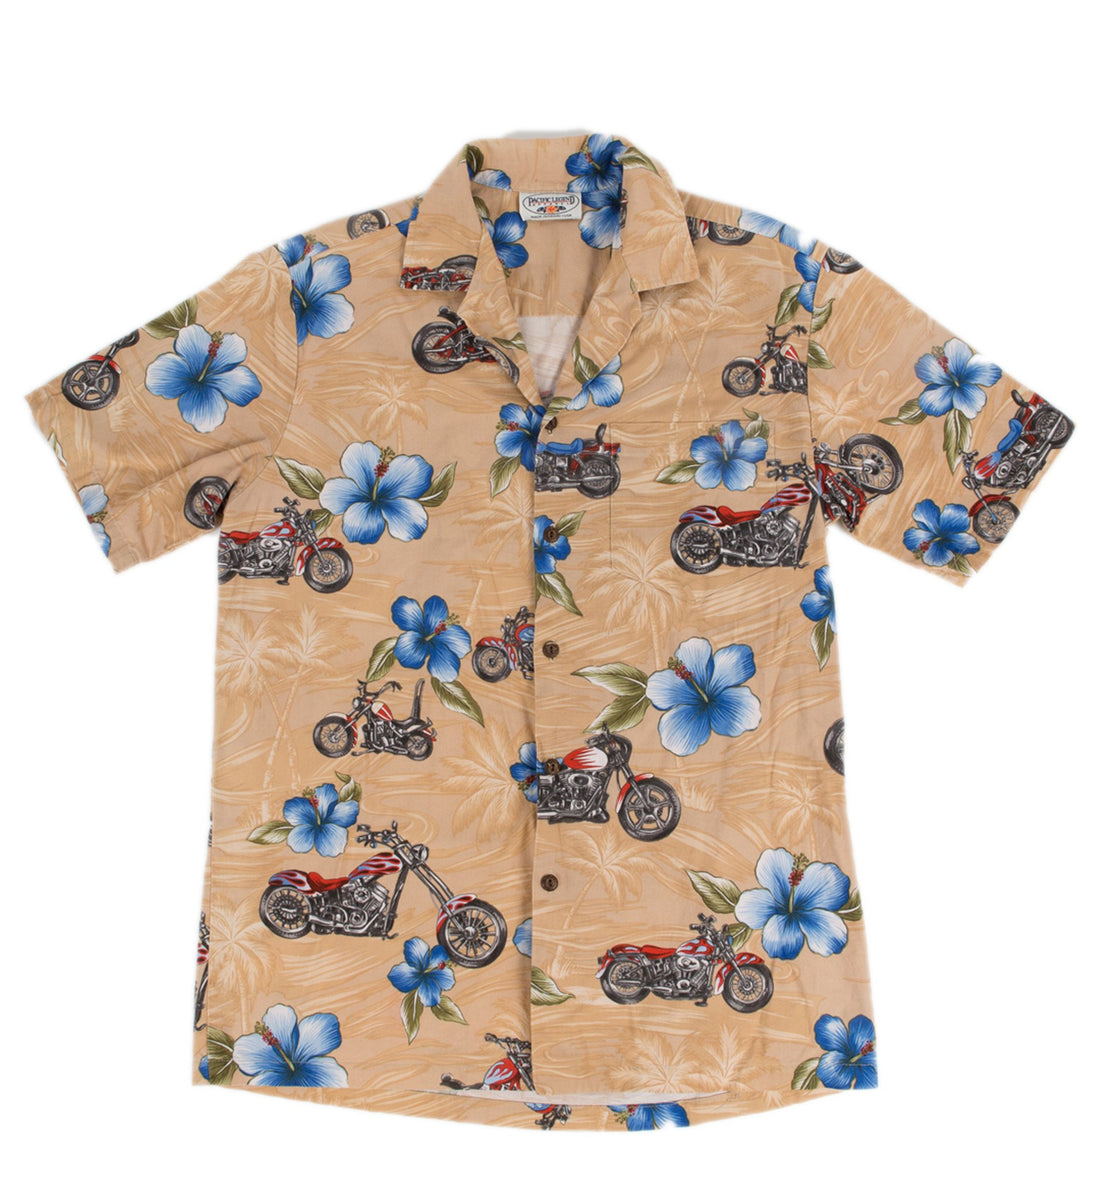 Vintage Motorcycle Button up Shirt - Vintage - Iron and Resin